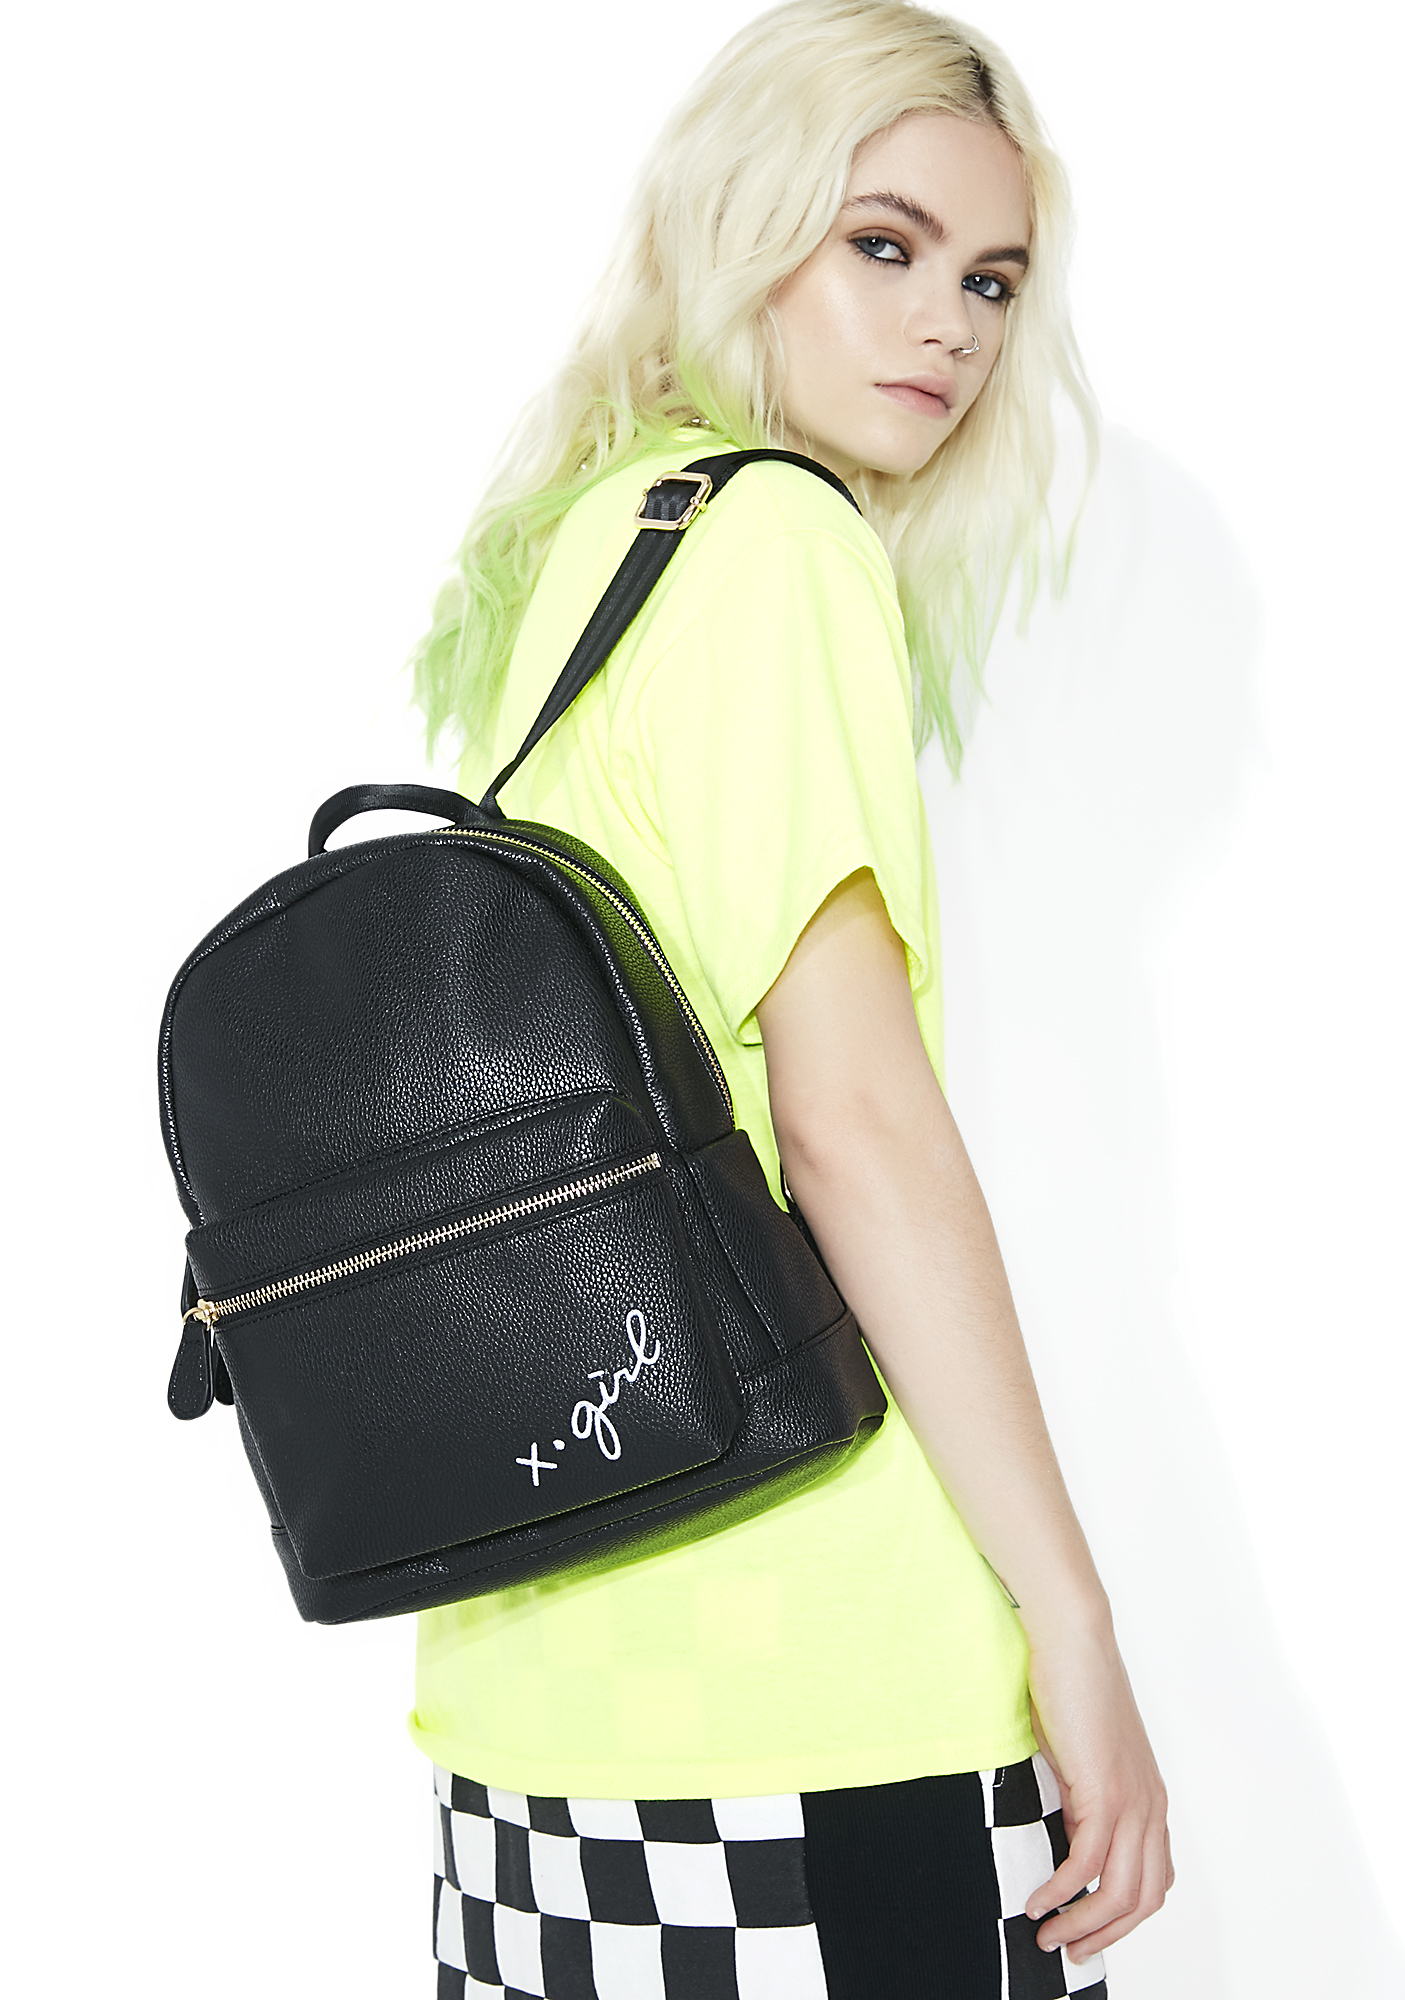 x-Girl Logo Embroidered Mini Backpack